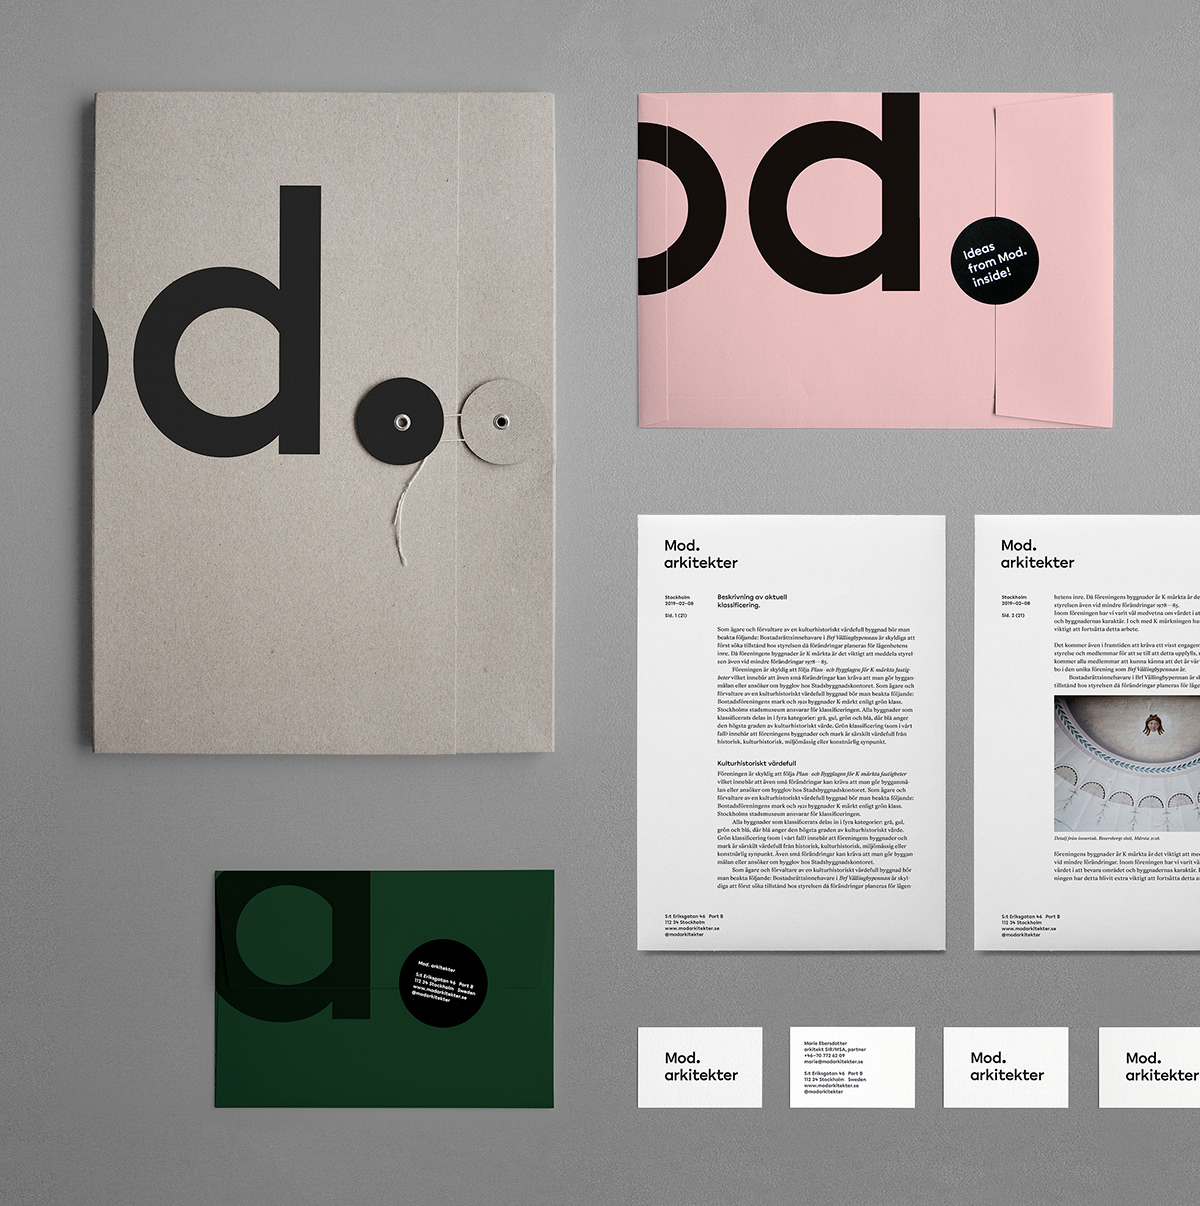 Art direction and design of the visual identity and web site for stockholm based architectural office mod mod works with development of new projects and